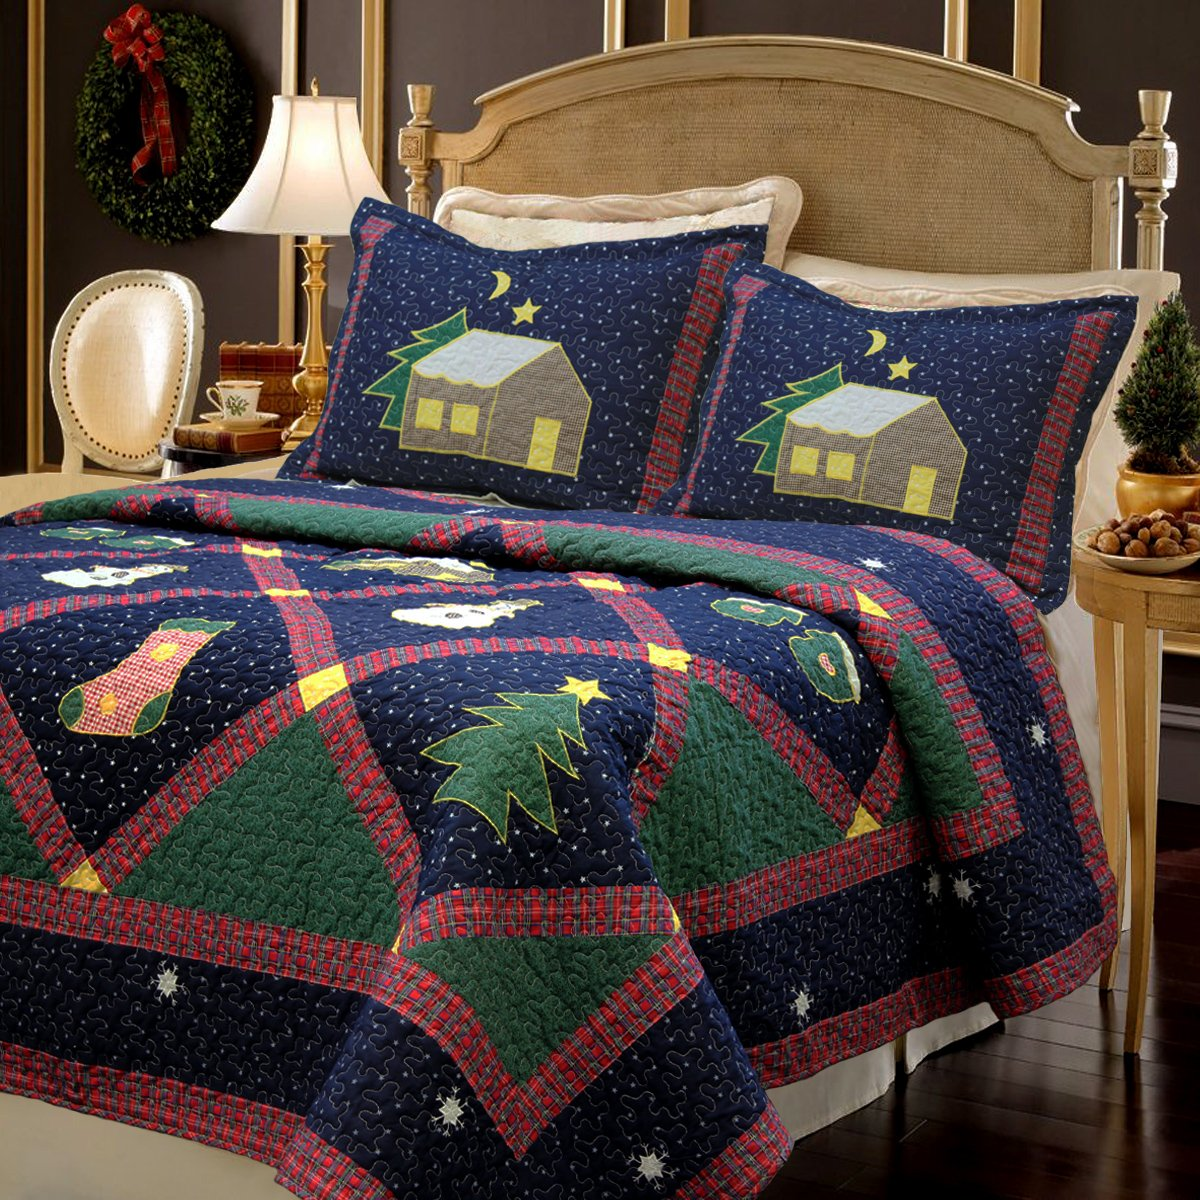 Coverlet, Bedspread (Christmas Night, King - 3 Piece)